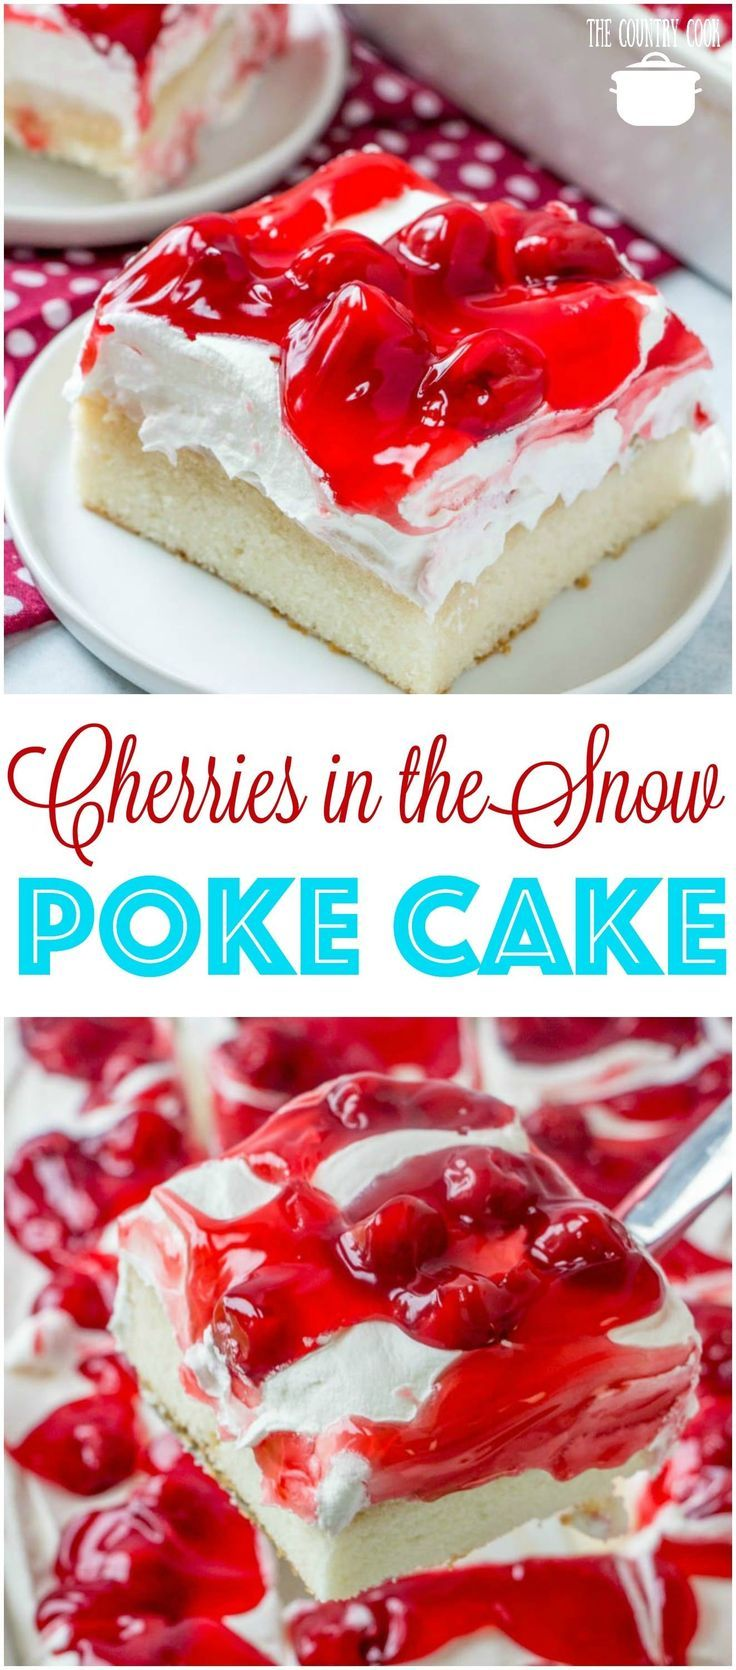 in the snow poke cake Cherries in the Snow Pudding Poke Cake recipe from The Country CookCherries in the Snow Pudding Poke Cake recipe from The Country Cook